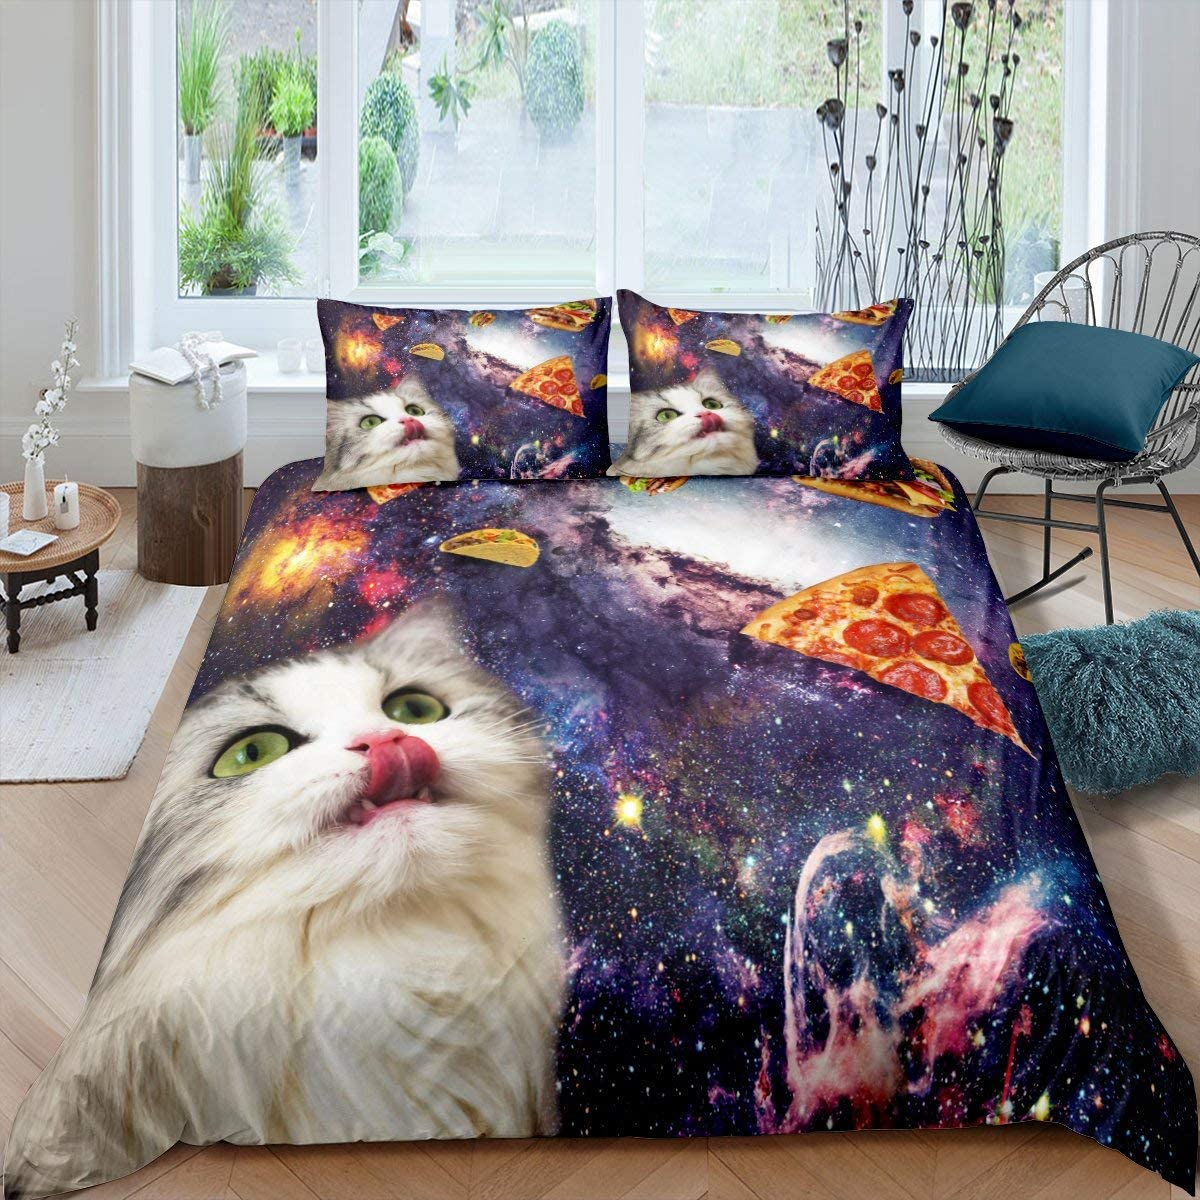 Erosebridal Cute Cat Bedding Set Purple Galaxy Starry Sky Duvet Cover Pizza Food Dessert Comforter Cover Mysterious Outer Space Universe Bedspread Cover 3 Pcs Queen Size Stain Resistant